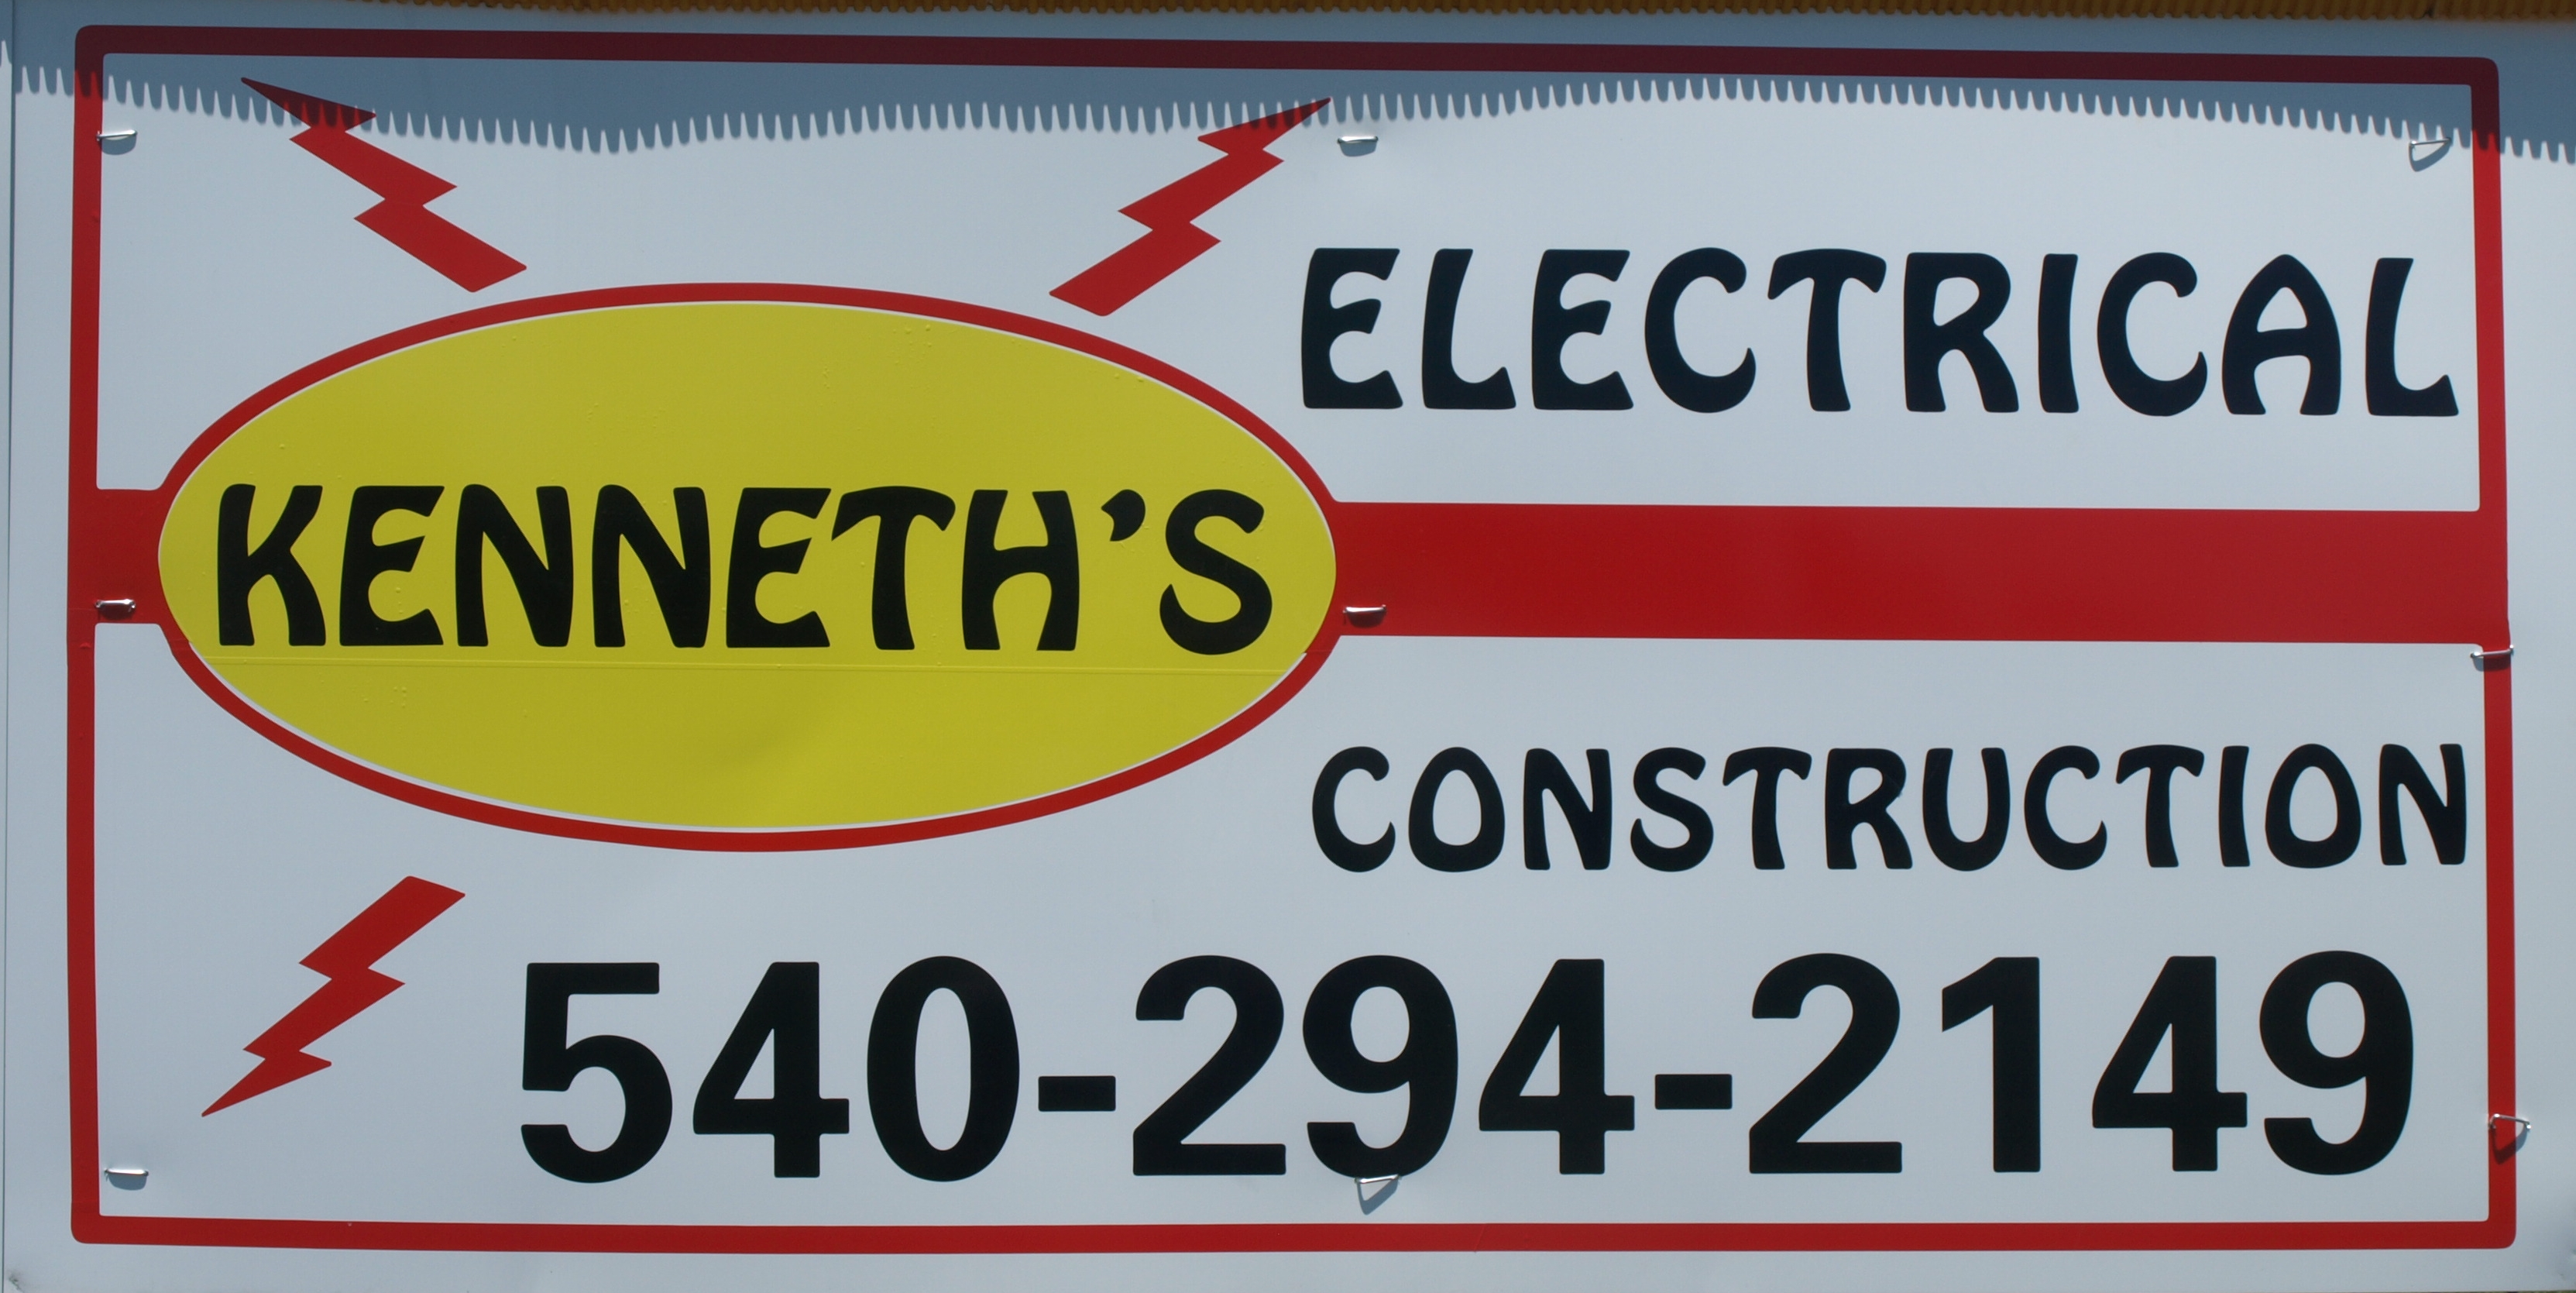 Kenneth's Electrical & Construction